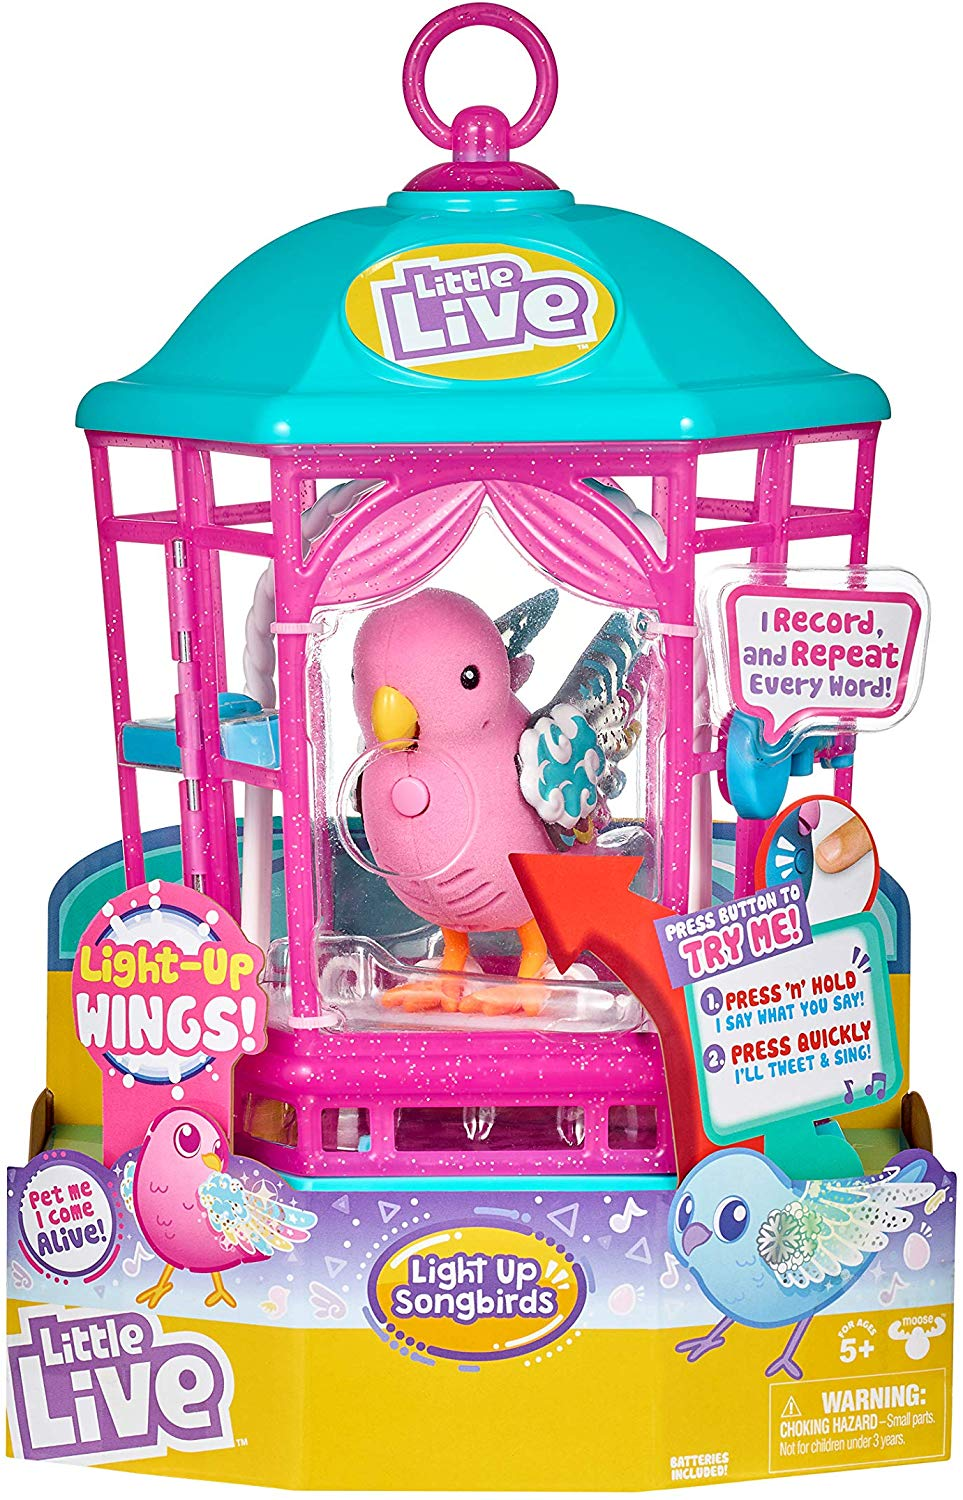 Inspiration for Christmas gifts for children - 10 things under £50 that I'm getting my 8 year old son and 5 year old daughter for Christmas this year. Little live light up bird.